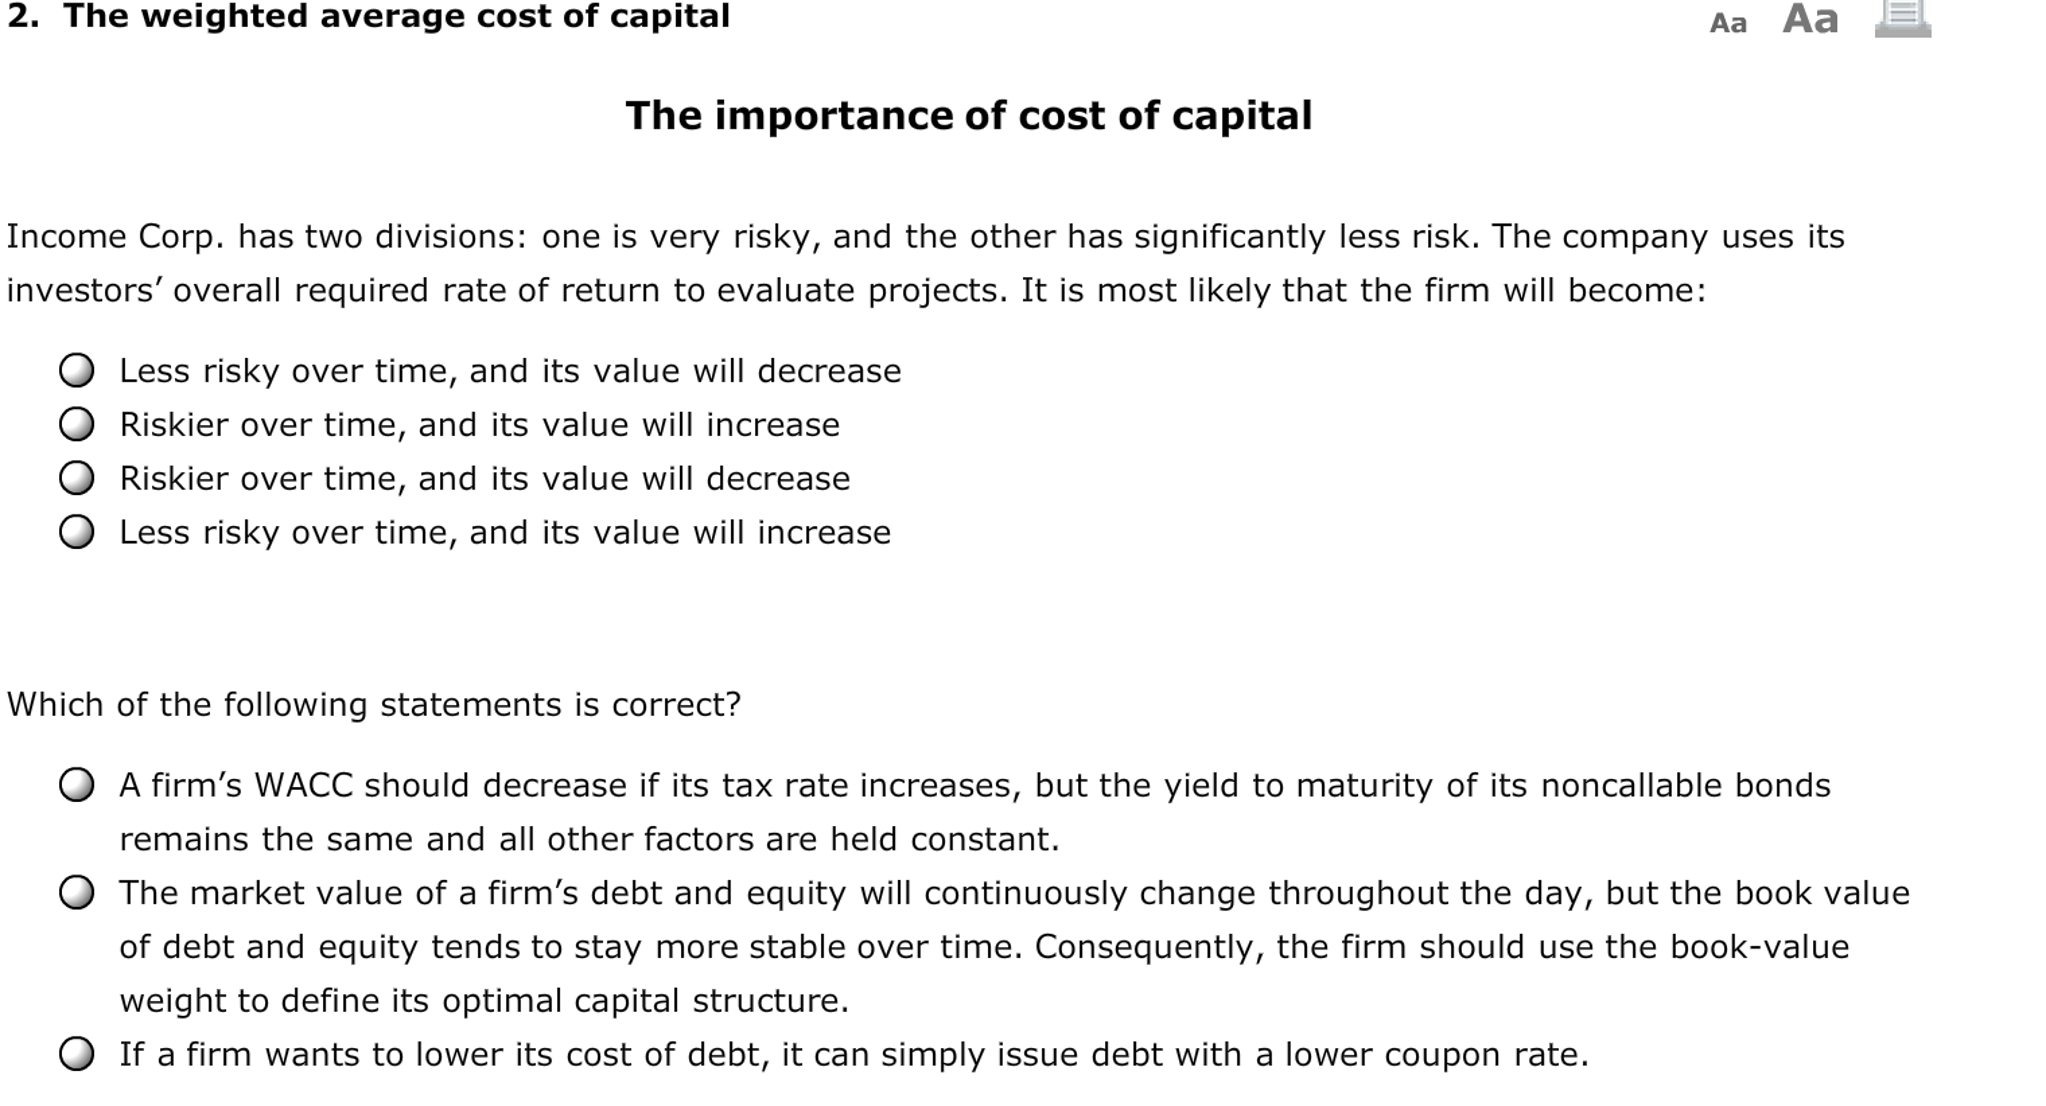 Weighted Average Cost of Capital and Single Hurdle Rate